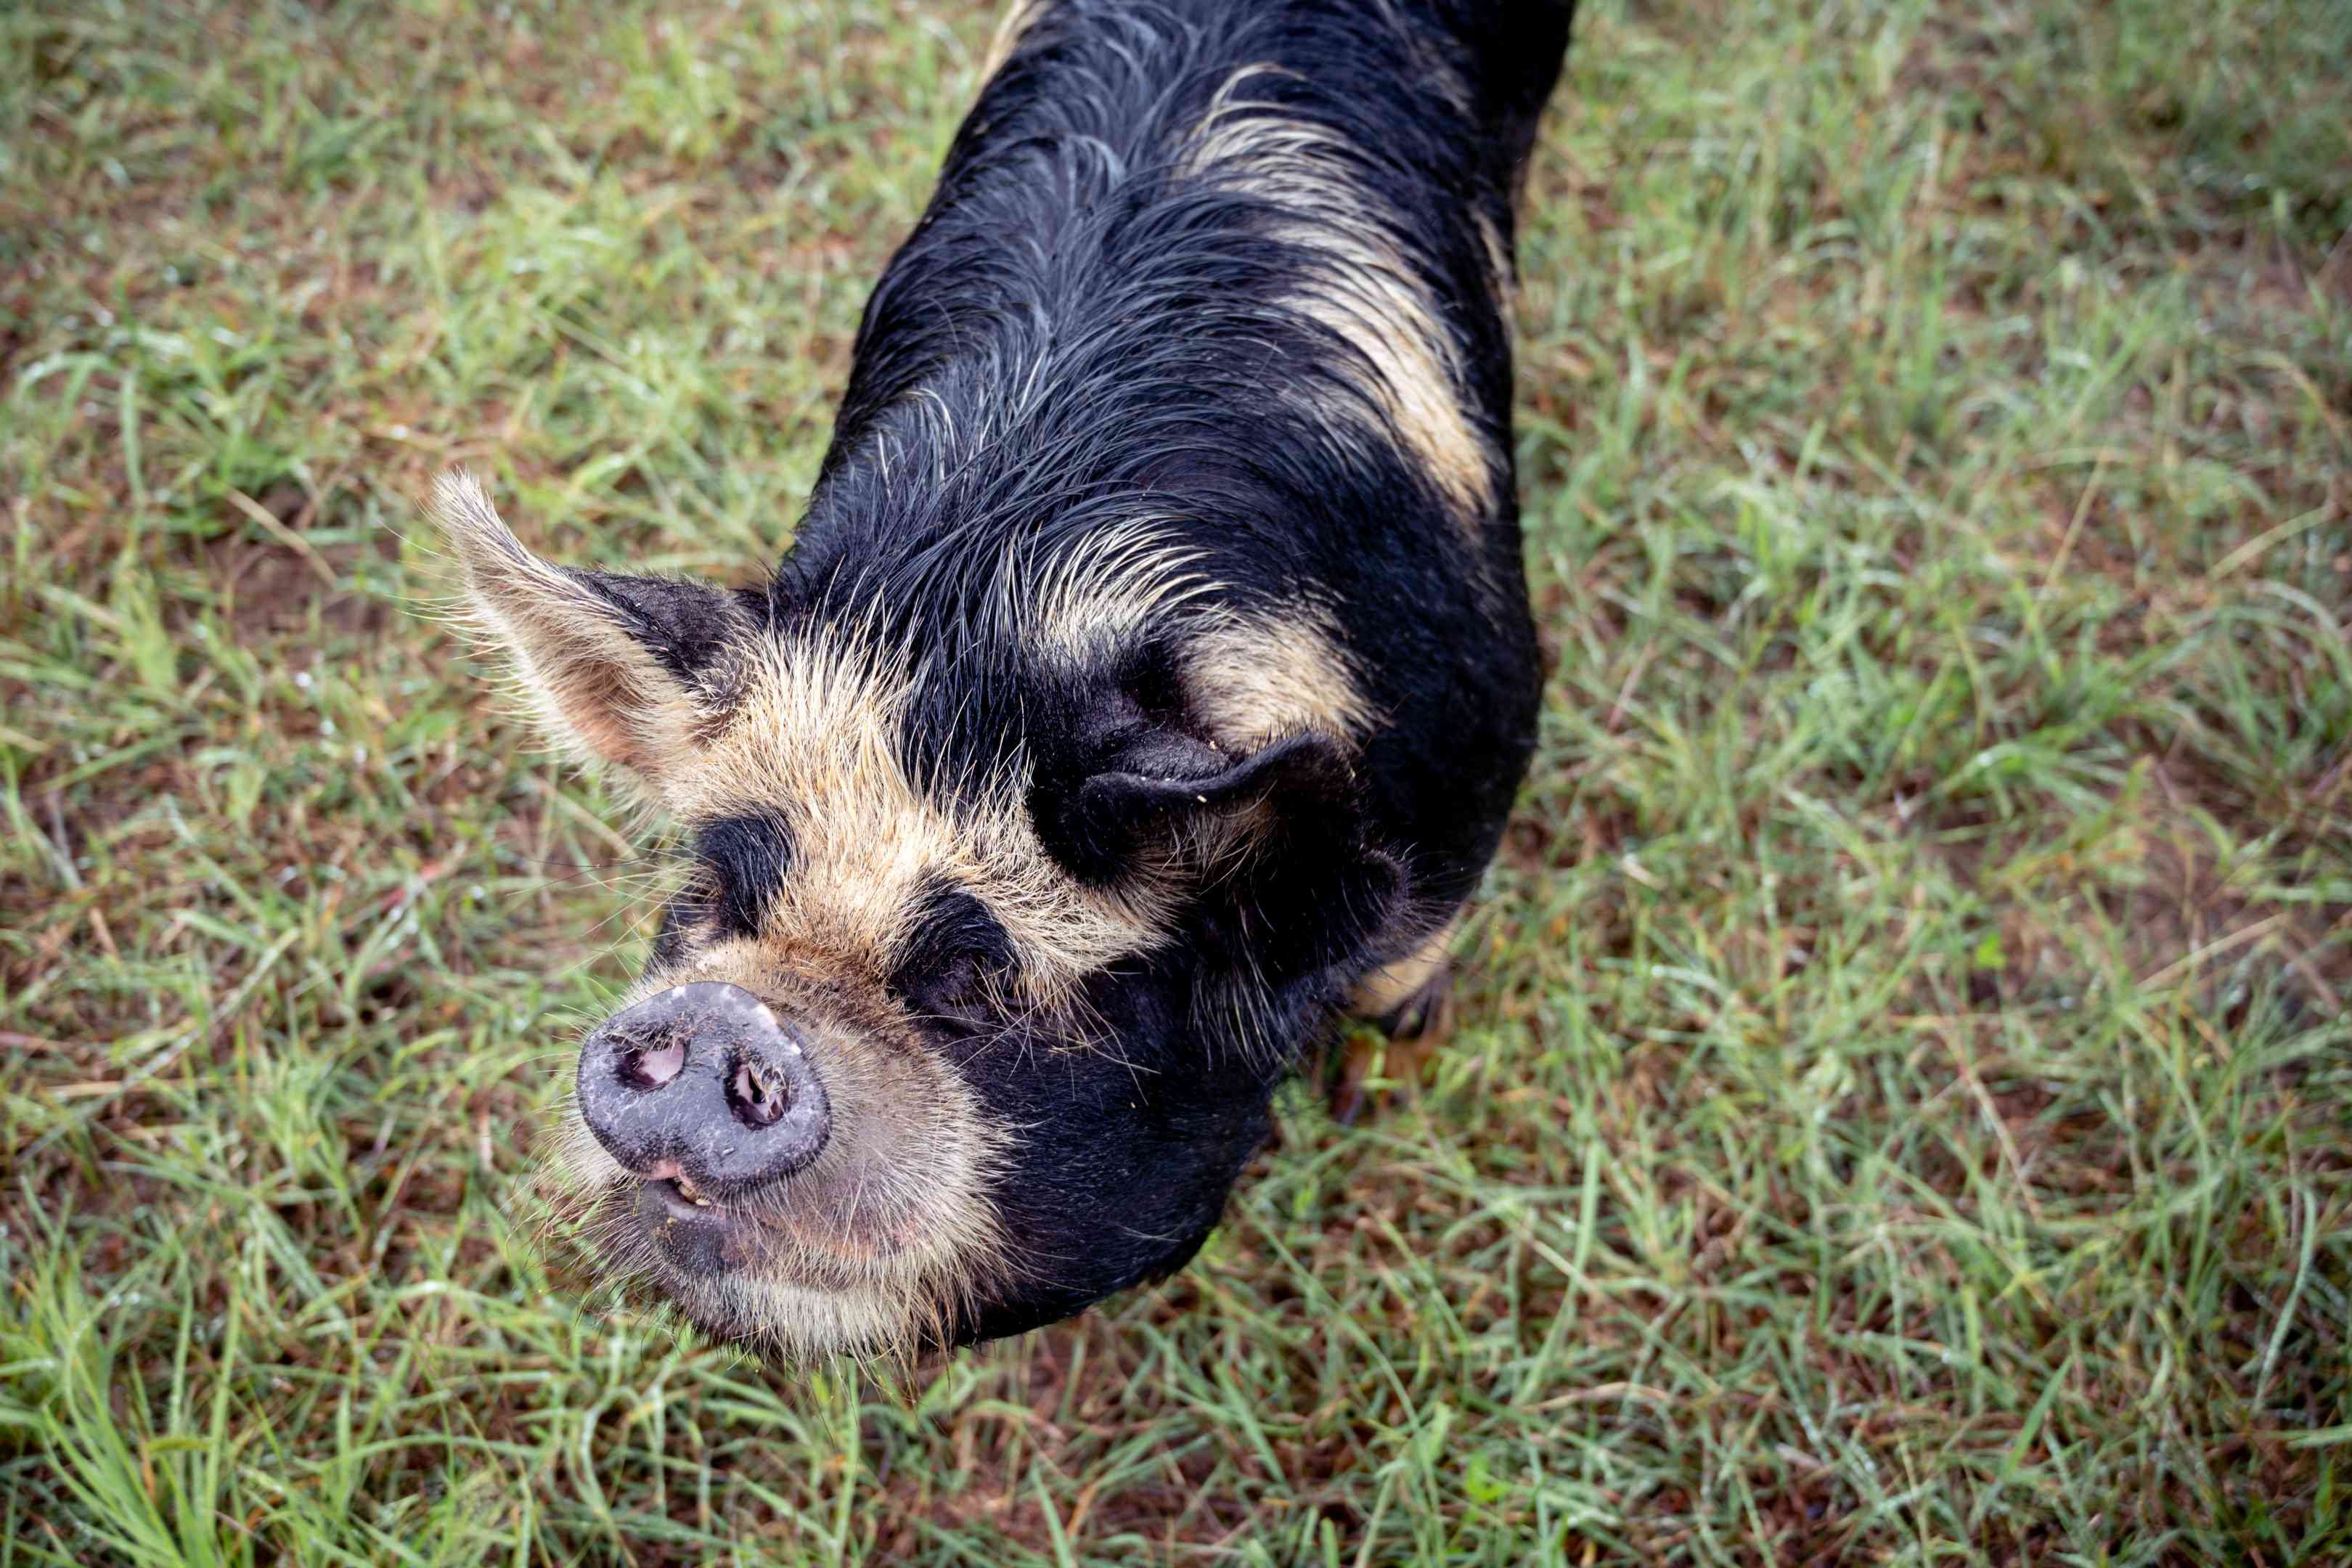 spotted brindle black and tan pig in grass gazes up at viewer